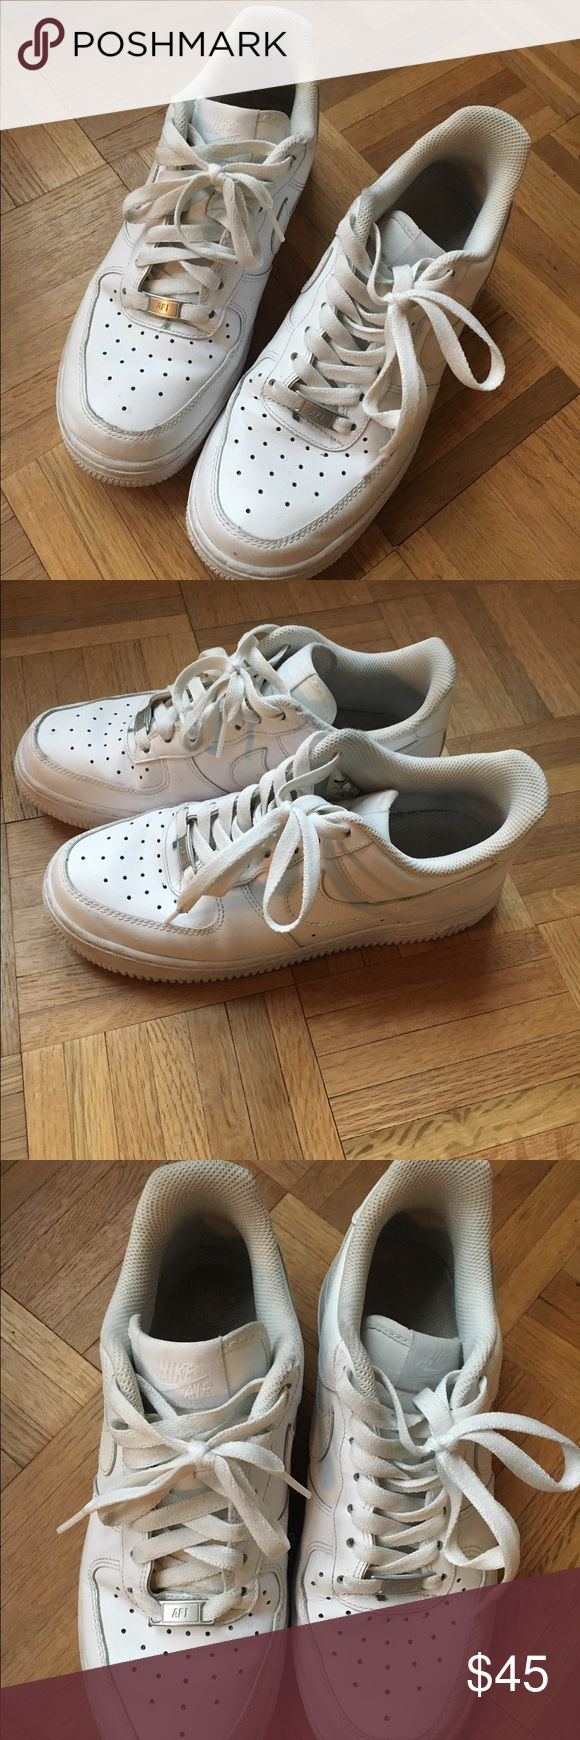 White Nike Air Force One Shoes White Nike Air Force Ones. Good condition! Size 8 Nike Shoes Sneakers